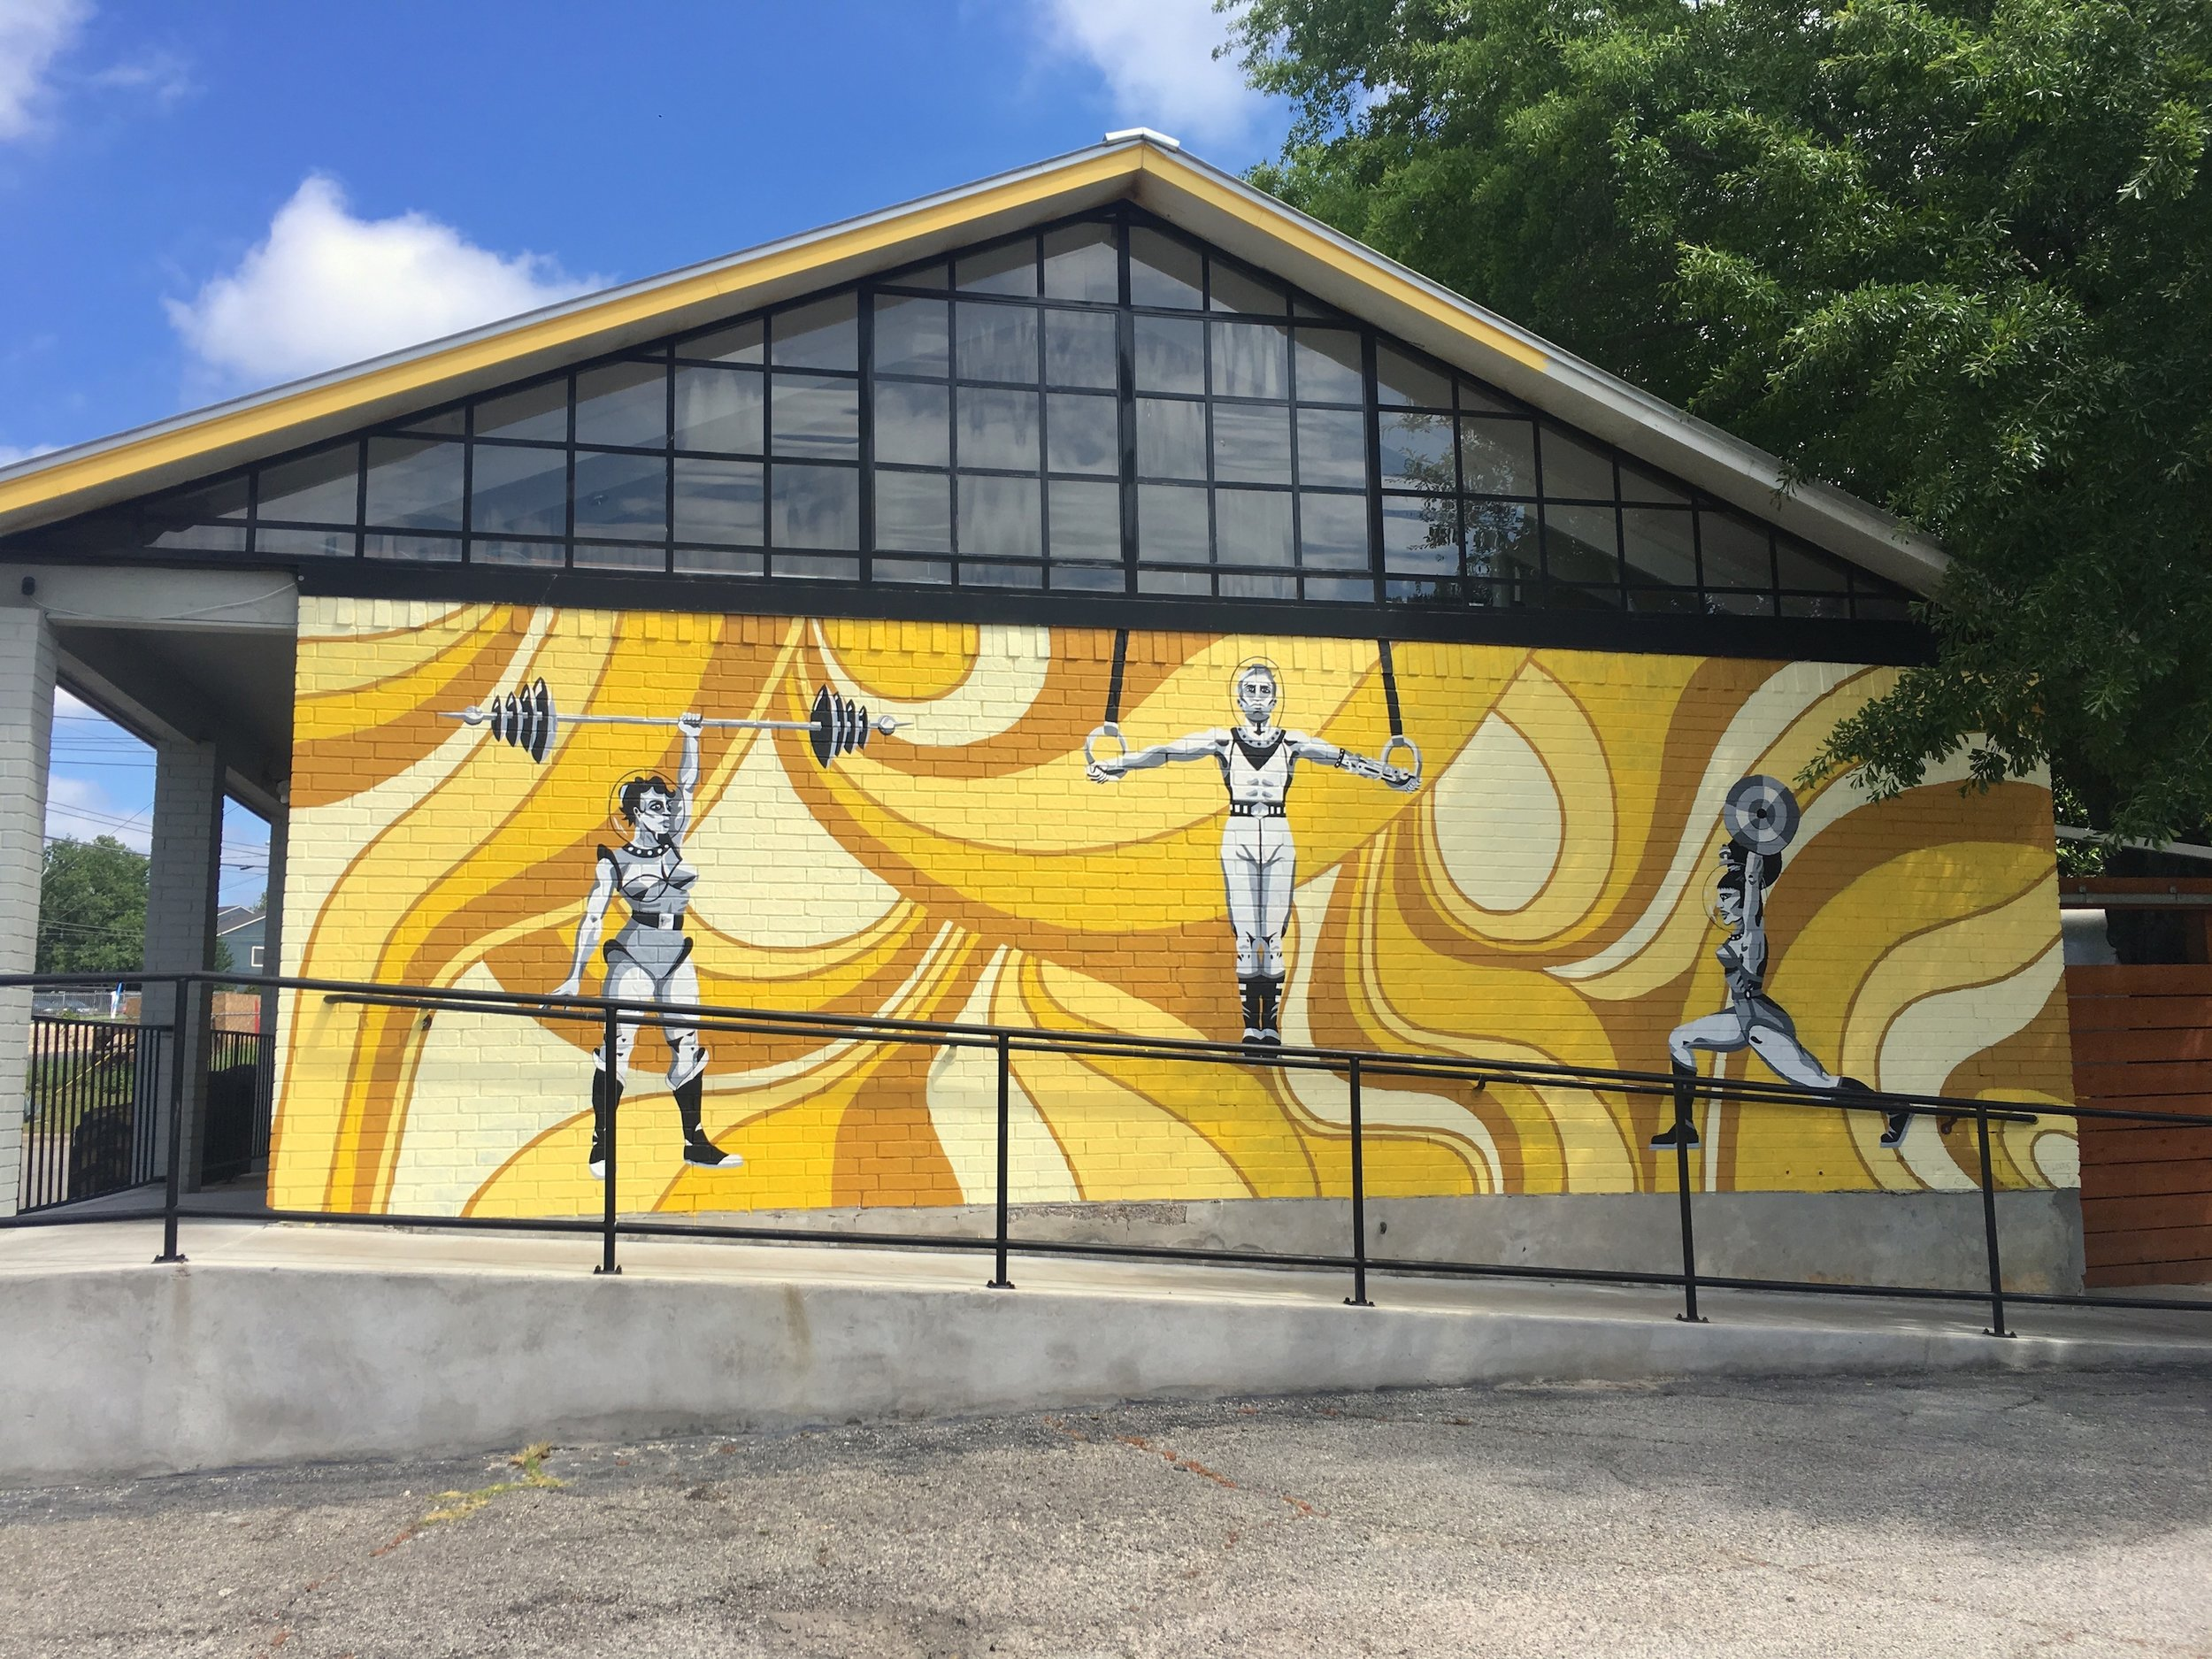 Space Lifters for Crossfit Lumos, 2415 Burleson Road, Austin, TX. 11 x 30 feet. 2019.